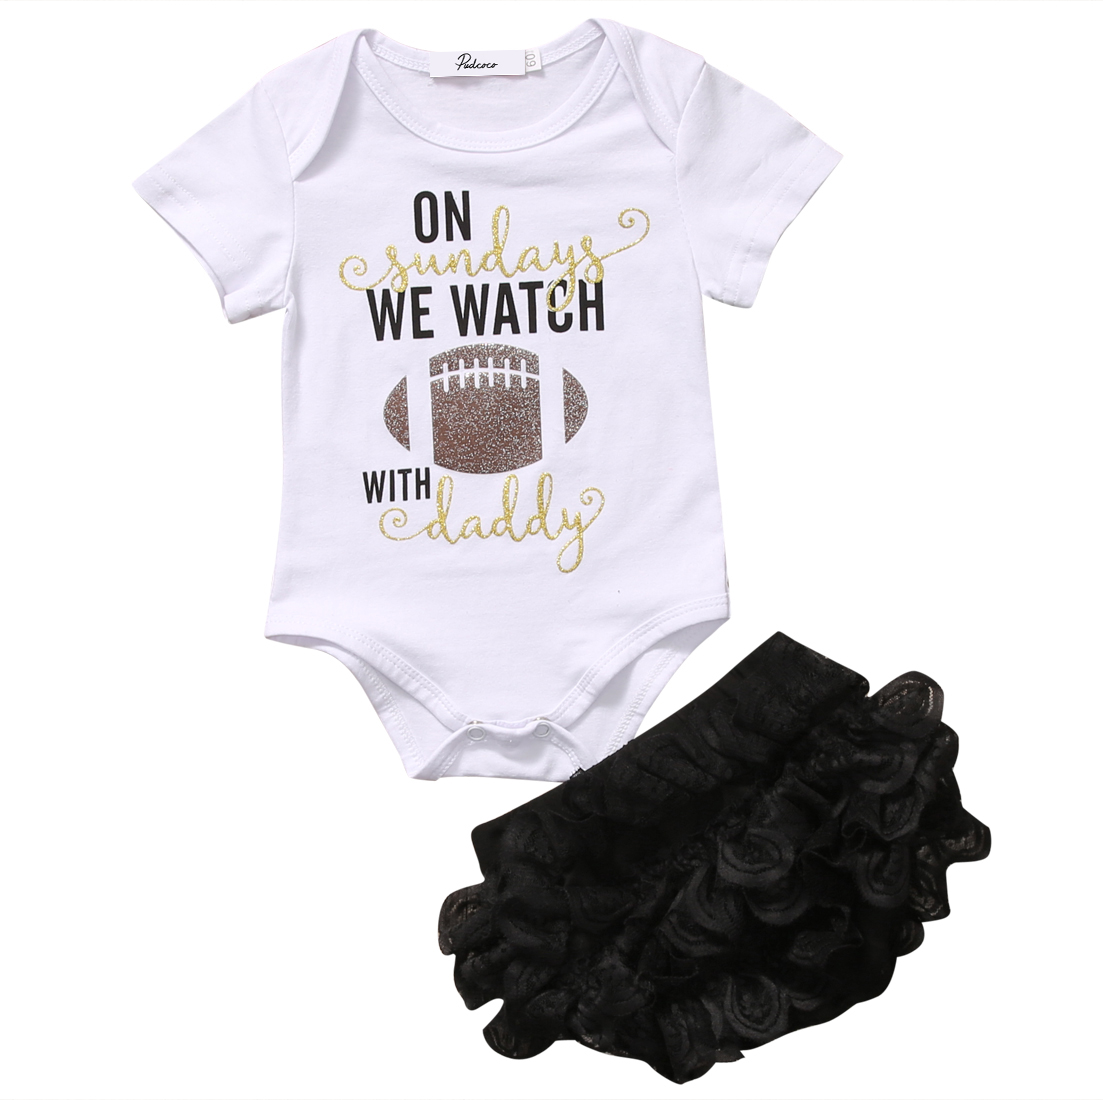 0-18M Cute Clothes Babies Summer Letters Clothing Set Toddler Baby Girl Football Printing bodysuit +Lace Floral Ruffle Shorts cute toddler baby girl cotton floral leopard bodysuit shoe hairband 3pcs outfits set summer newborn baby girl clothes